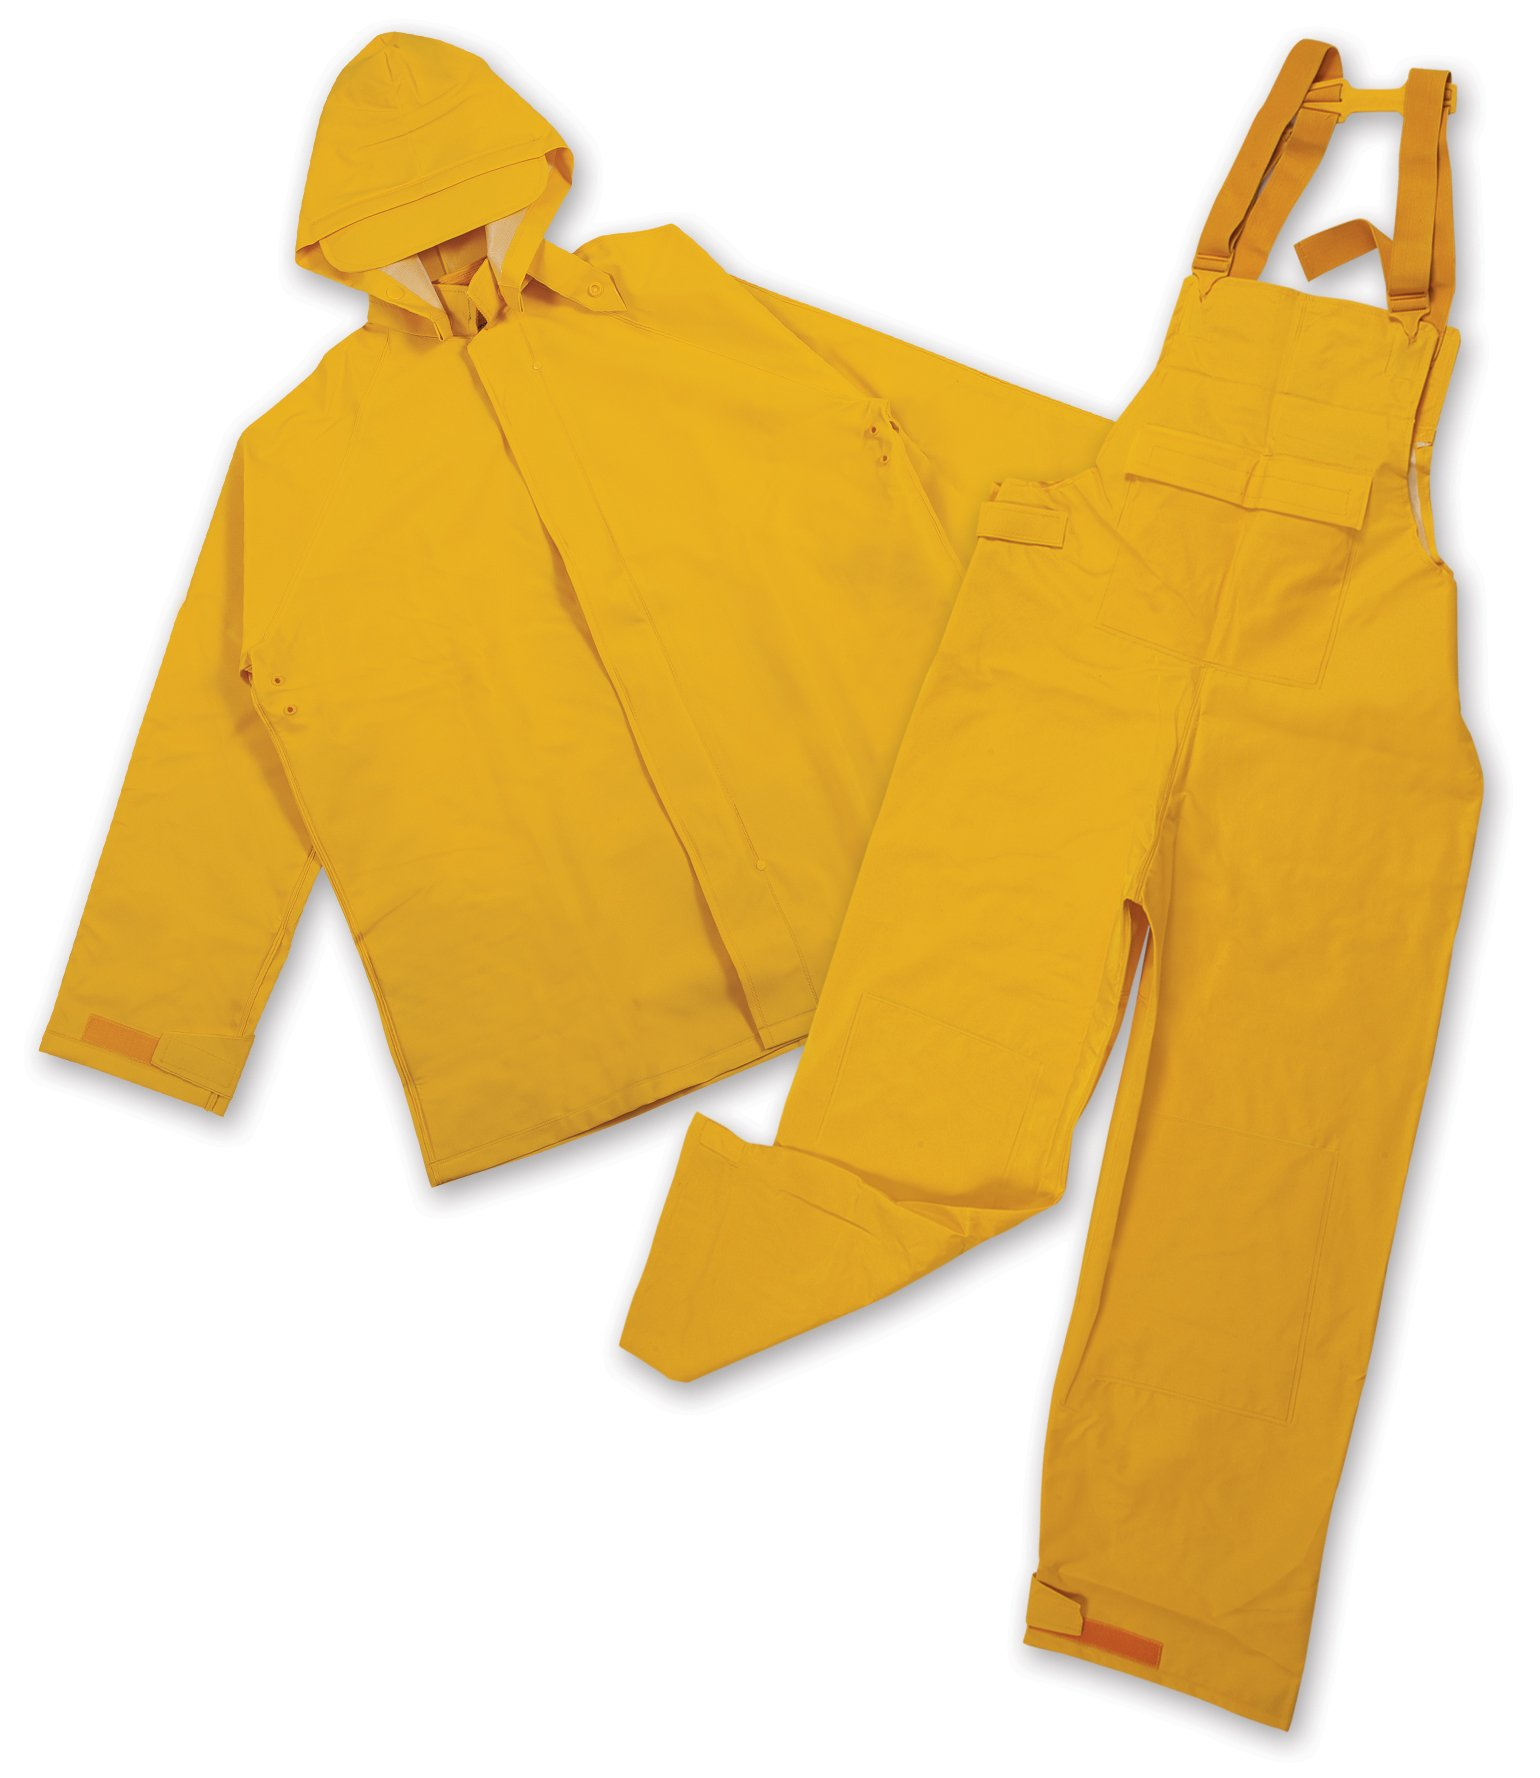 Stansport Commercial Rainsuit, Yellow, XX-Large by Stansport